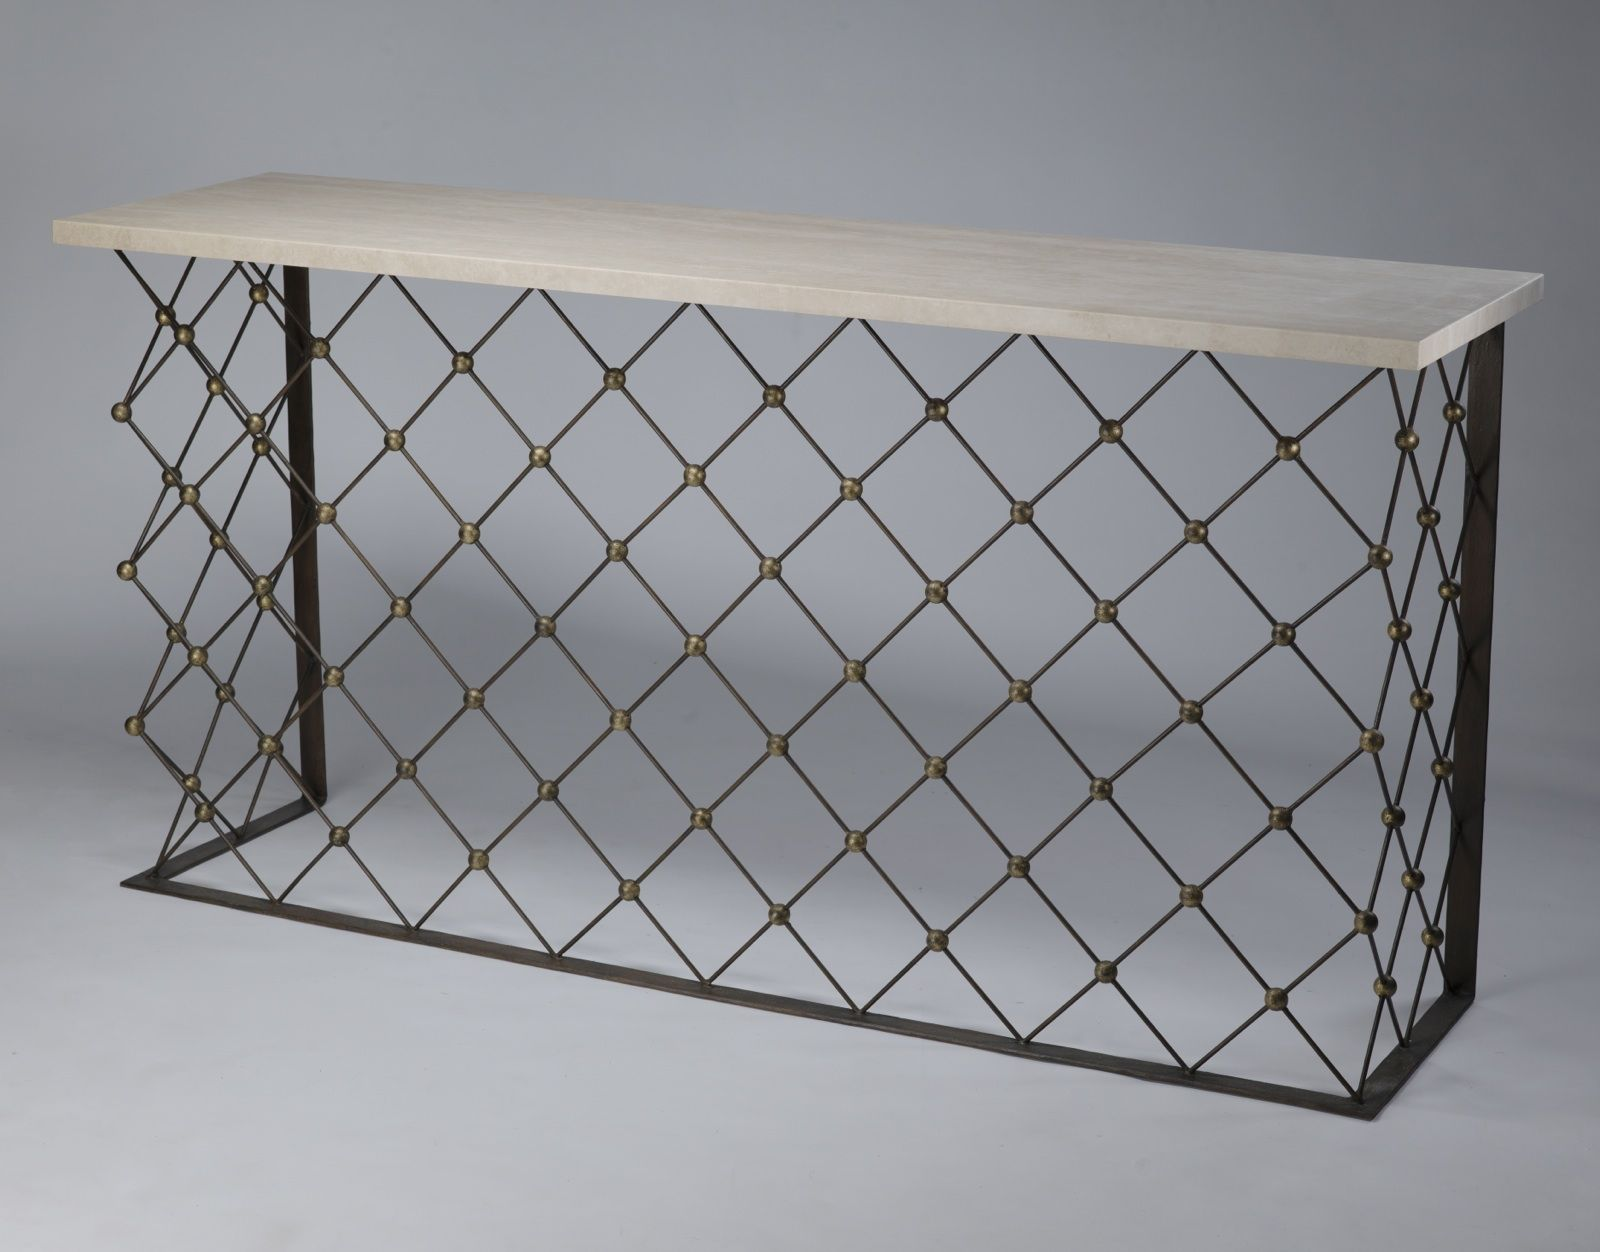 Royere inspired wrought iron net console table sold with marble royere inspired wrought iron net console table sold with marble top geotapseo Choice Image